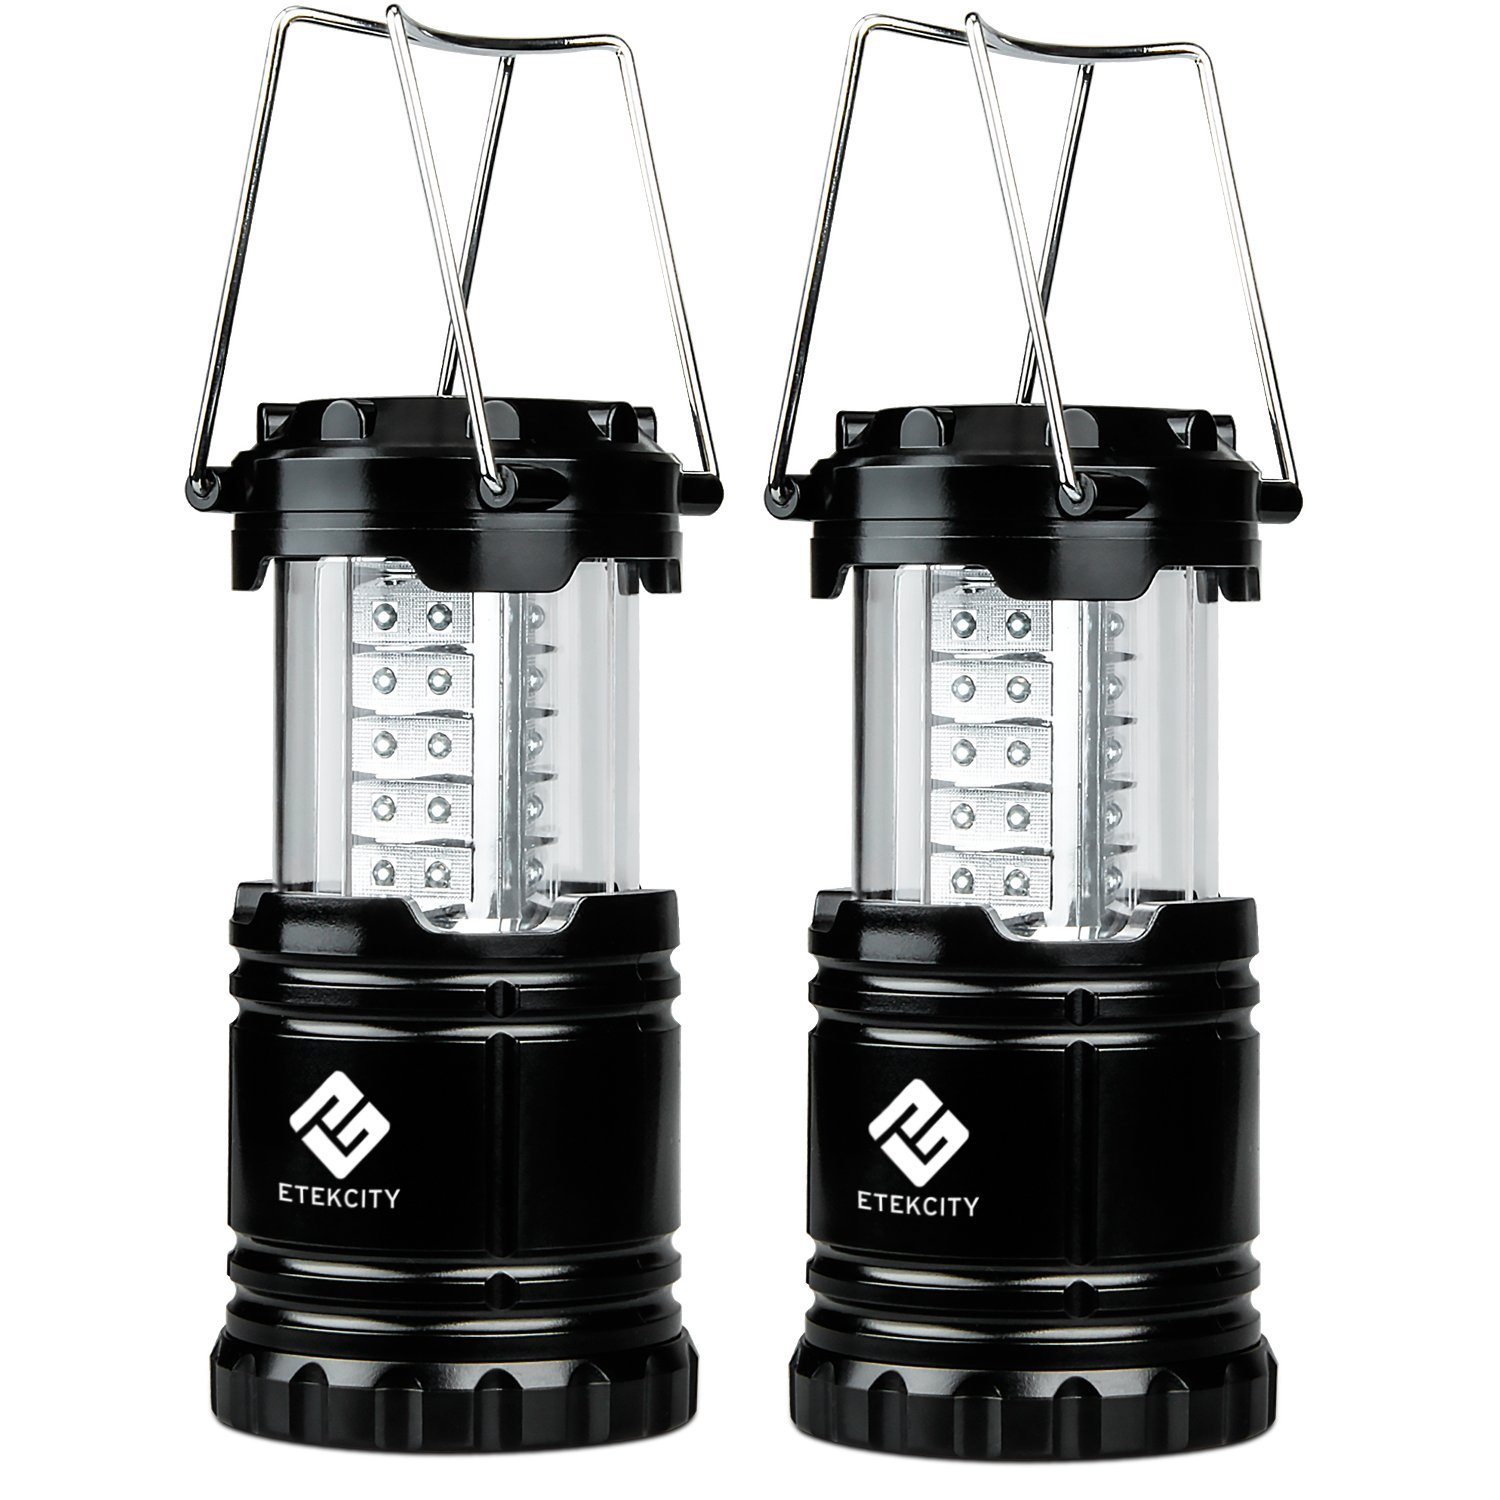 2 pack Etekcioty Portable Outdoor LED camping Lantern